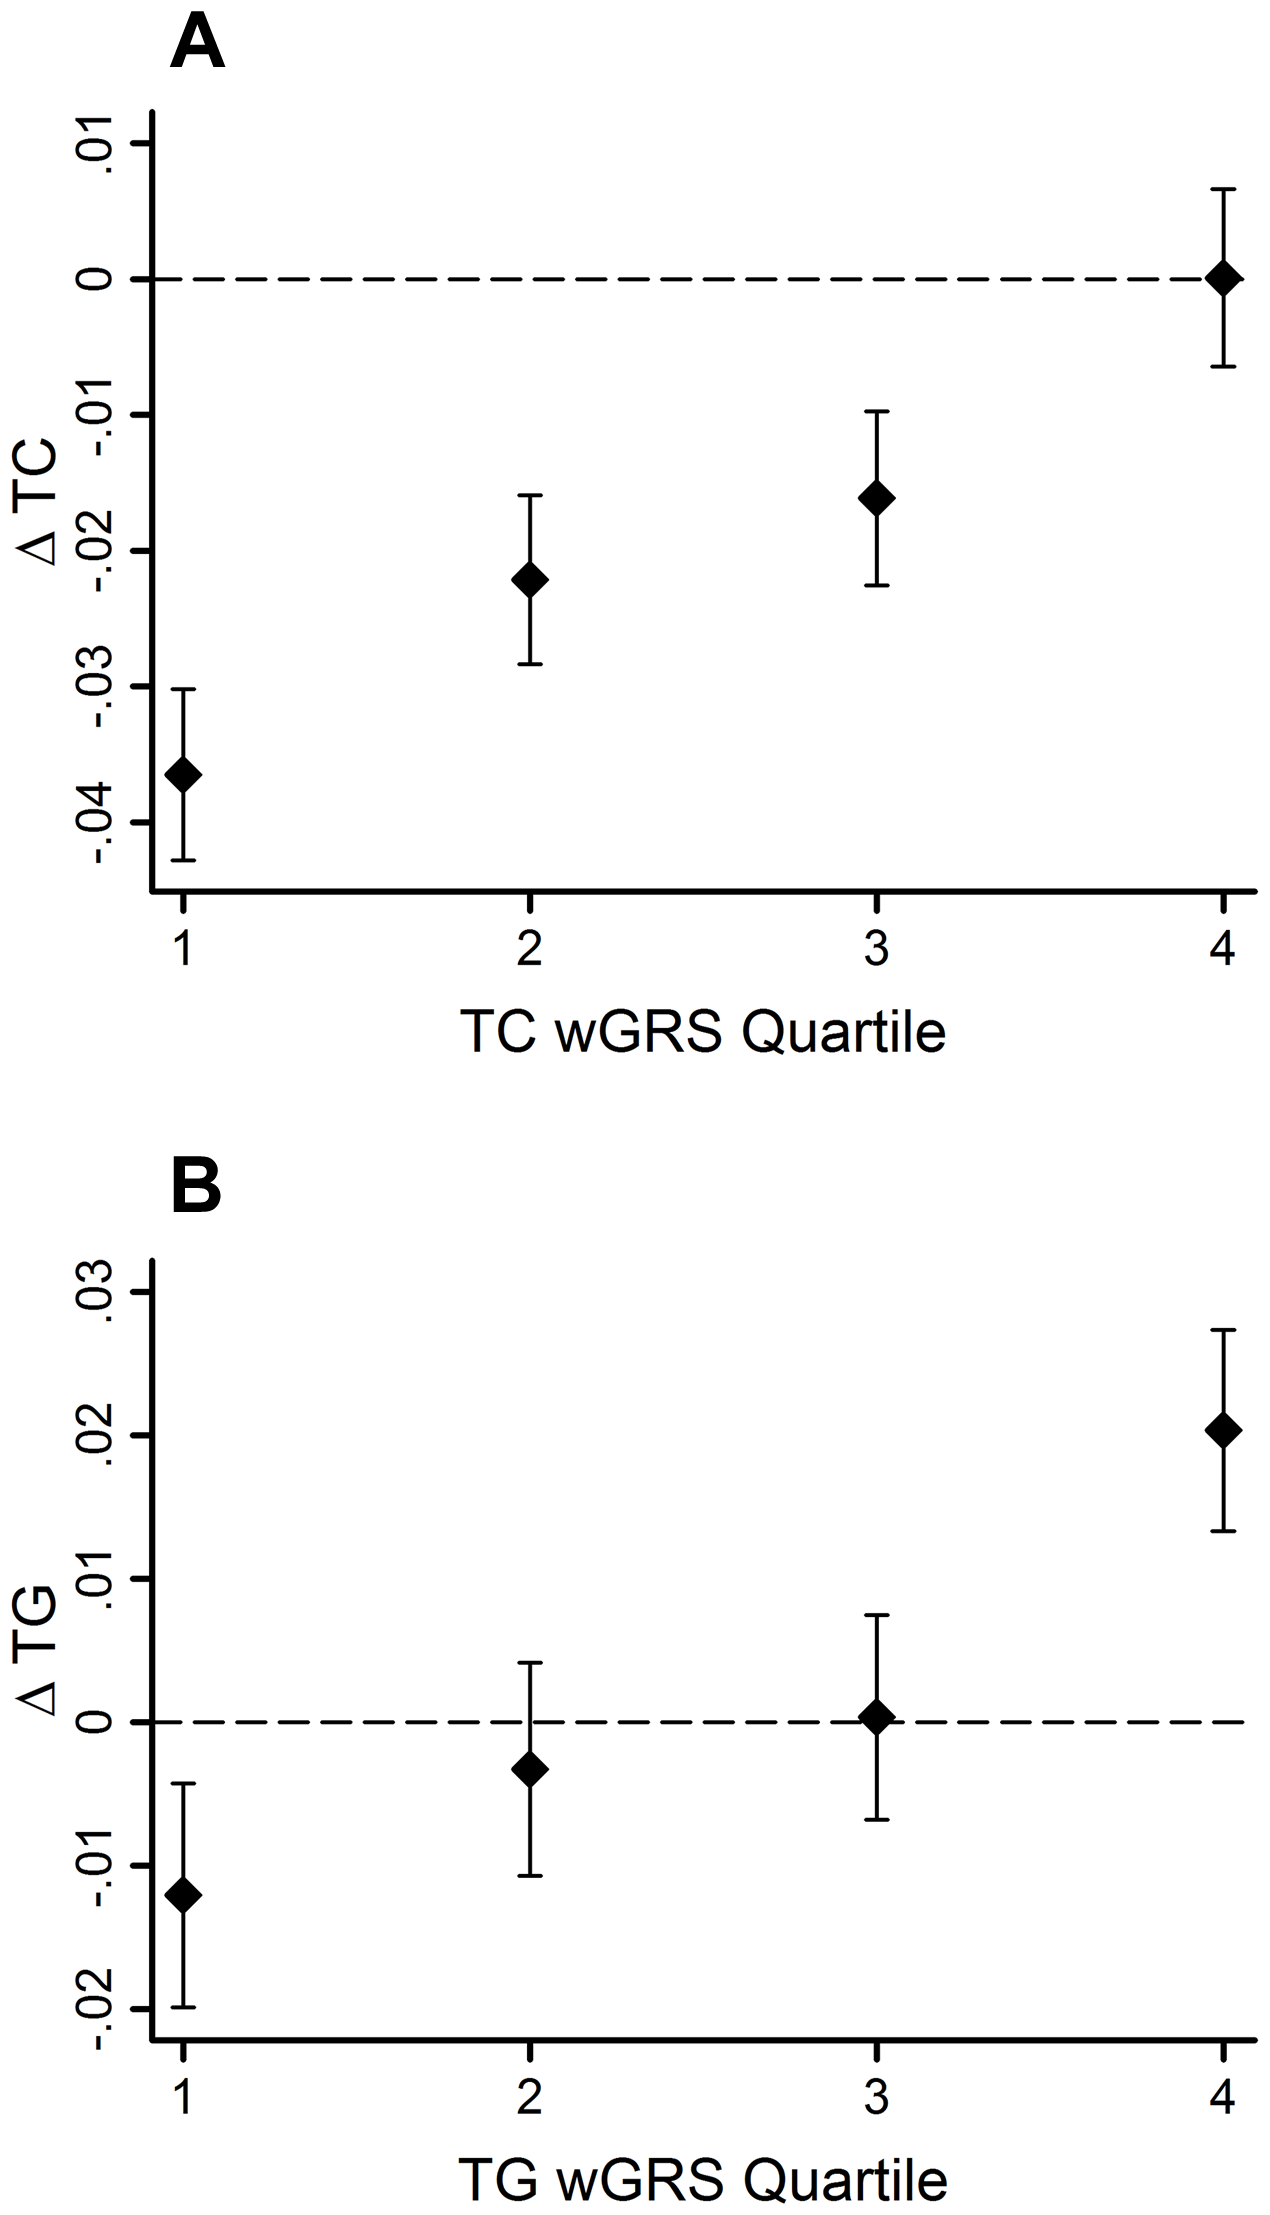 TC and TG level changes (95% CI) over 10-yr follow-up by wGRS quartiles.